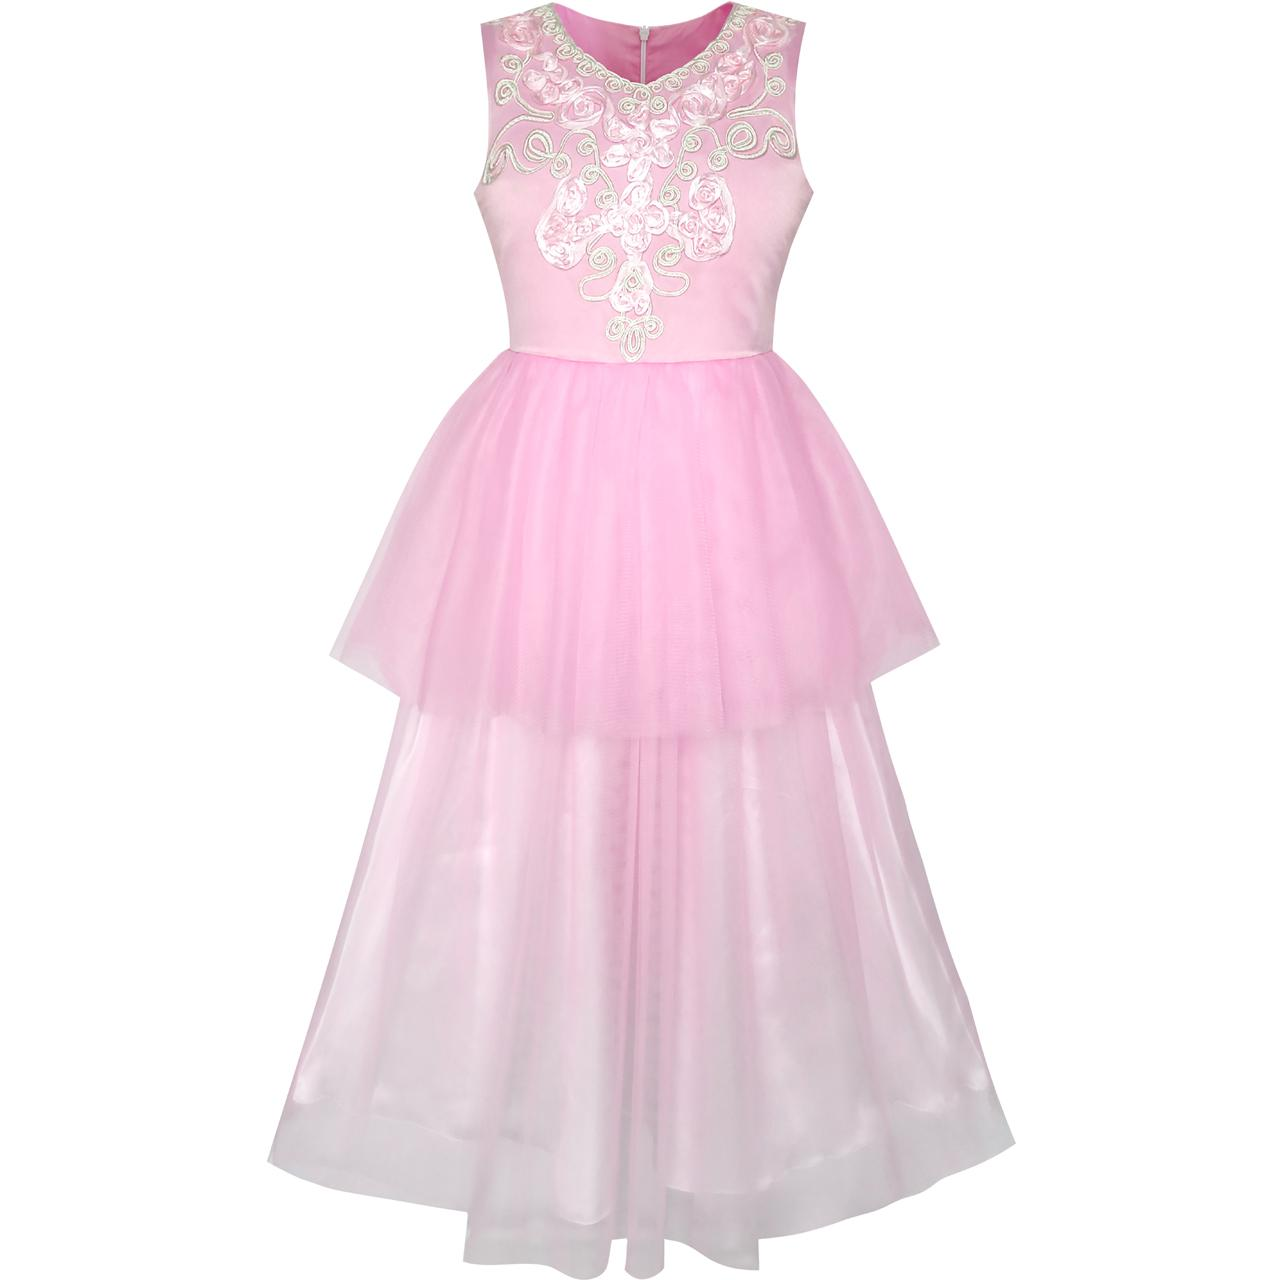 Sunny Fashion Flower Girls Dress Pink Dancing Ball Gown Princess Party 2018 Summer Wedding Gowns Children Clothes Size 7-14 sunny fashion girls dress watermelon tiered flower dance ball princess 2017 summer wedding party dresses clothes size 5 10